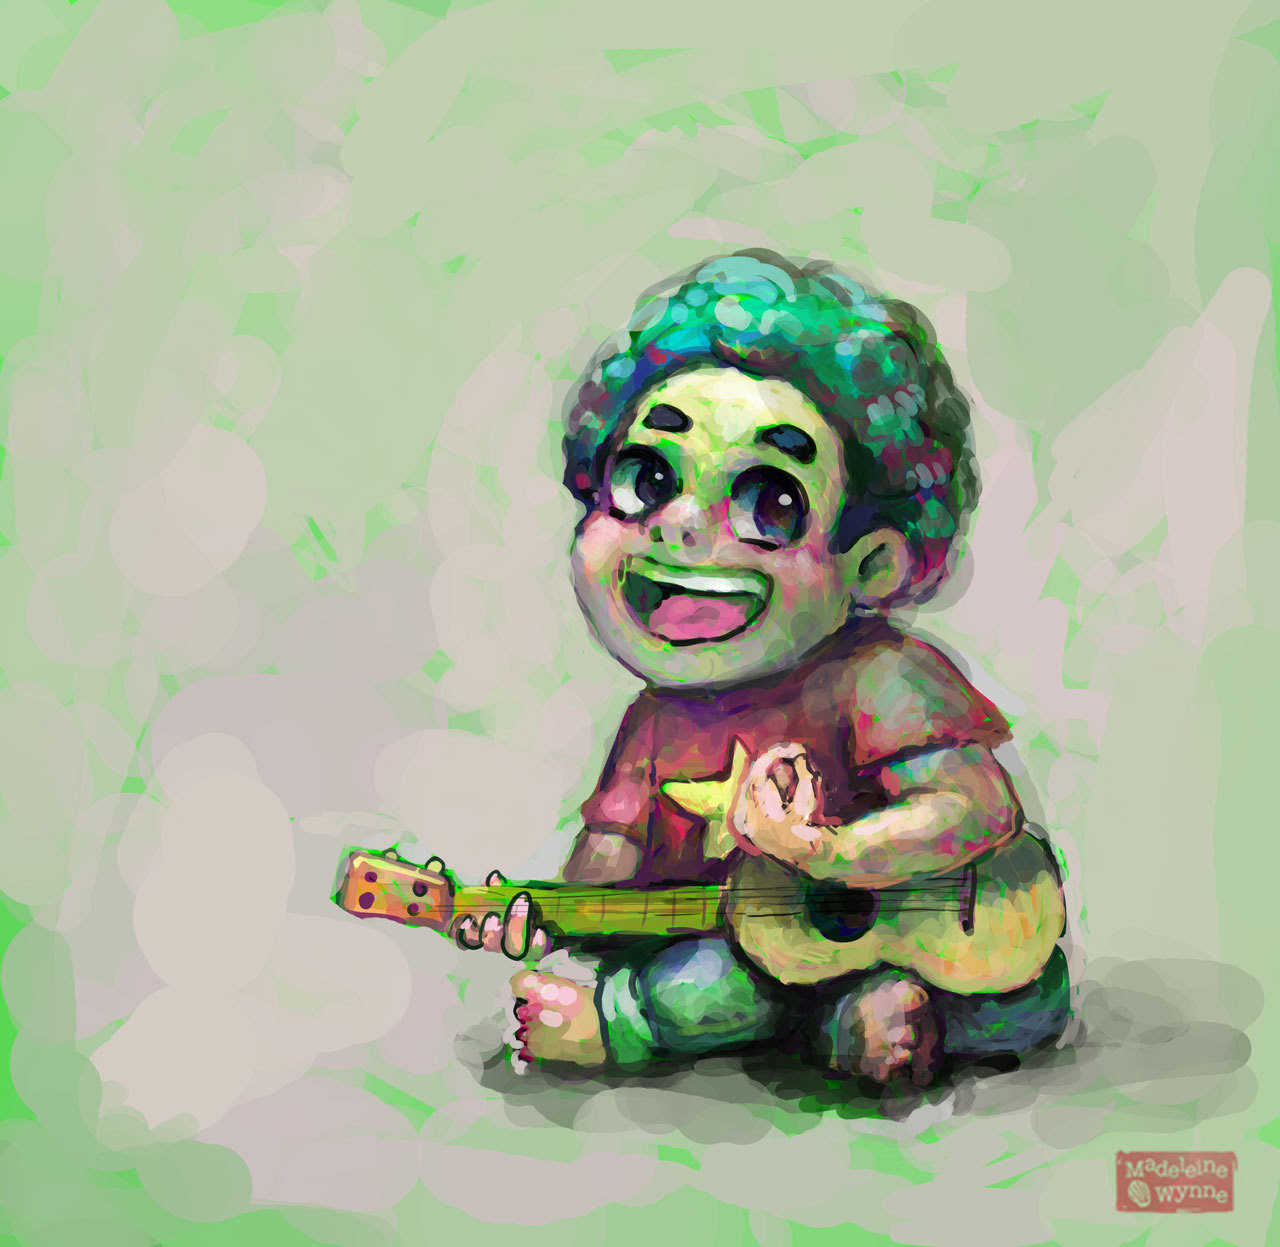 It's been a while since I uploaded new art. Here's a Steven and his ukelele to make up for it